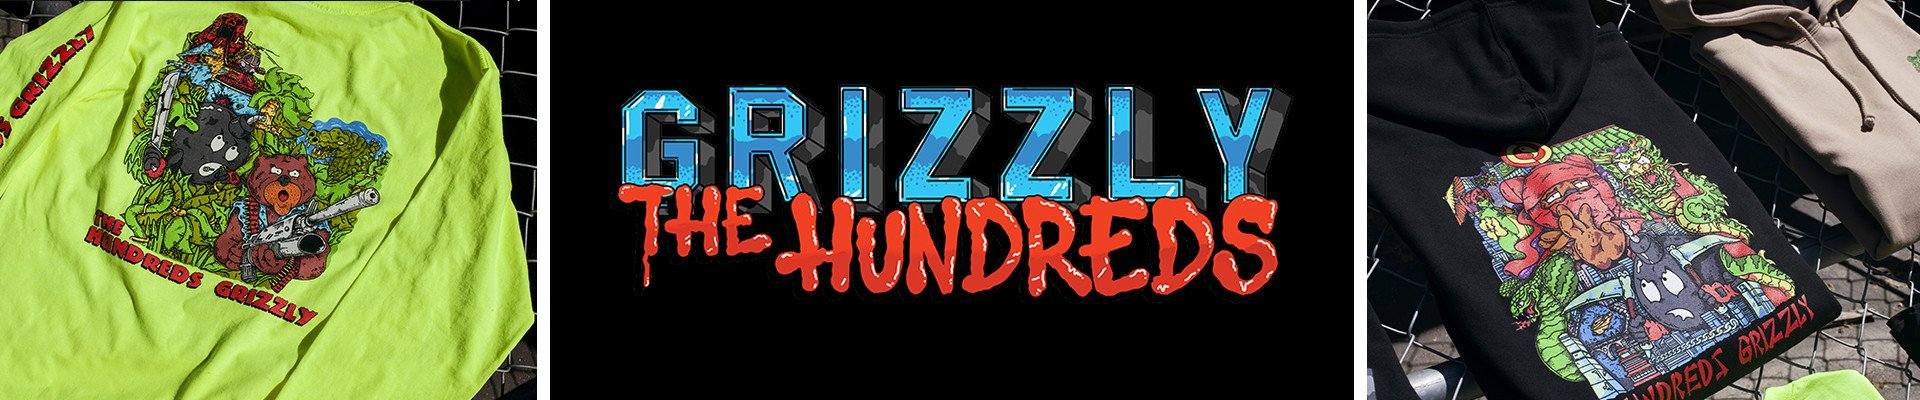 The Hundreds x Grizzly